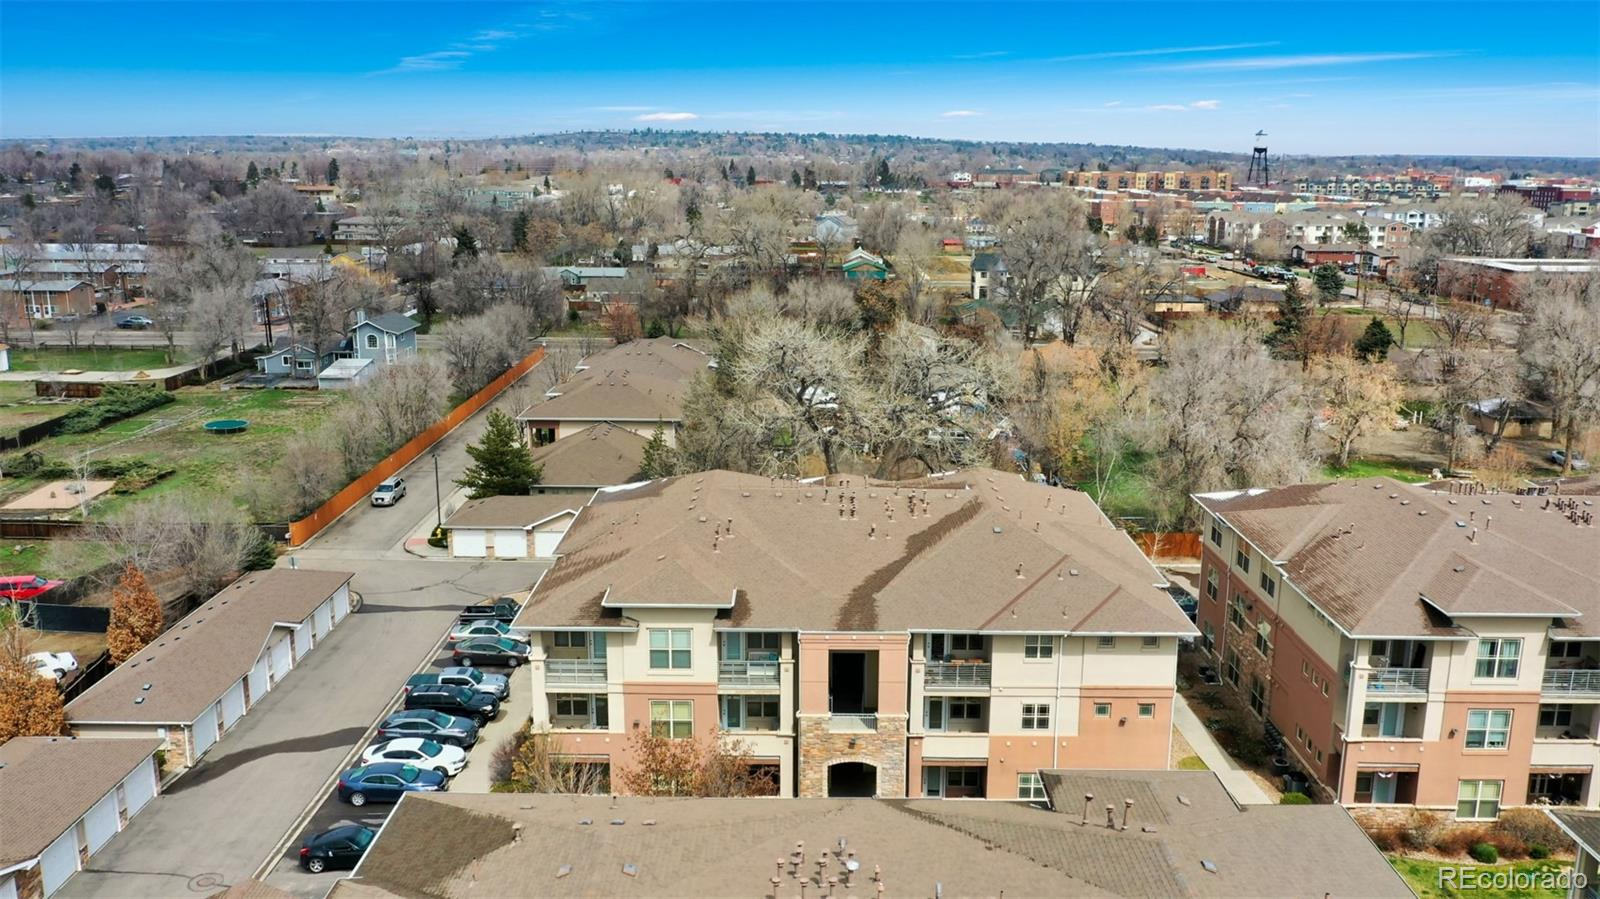 MLS# 3562922 - 27 - 8123 W 51st Place #202, Arvada, CO 80002